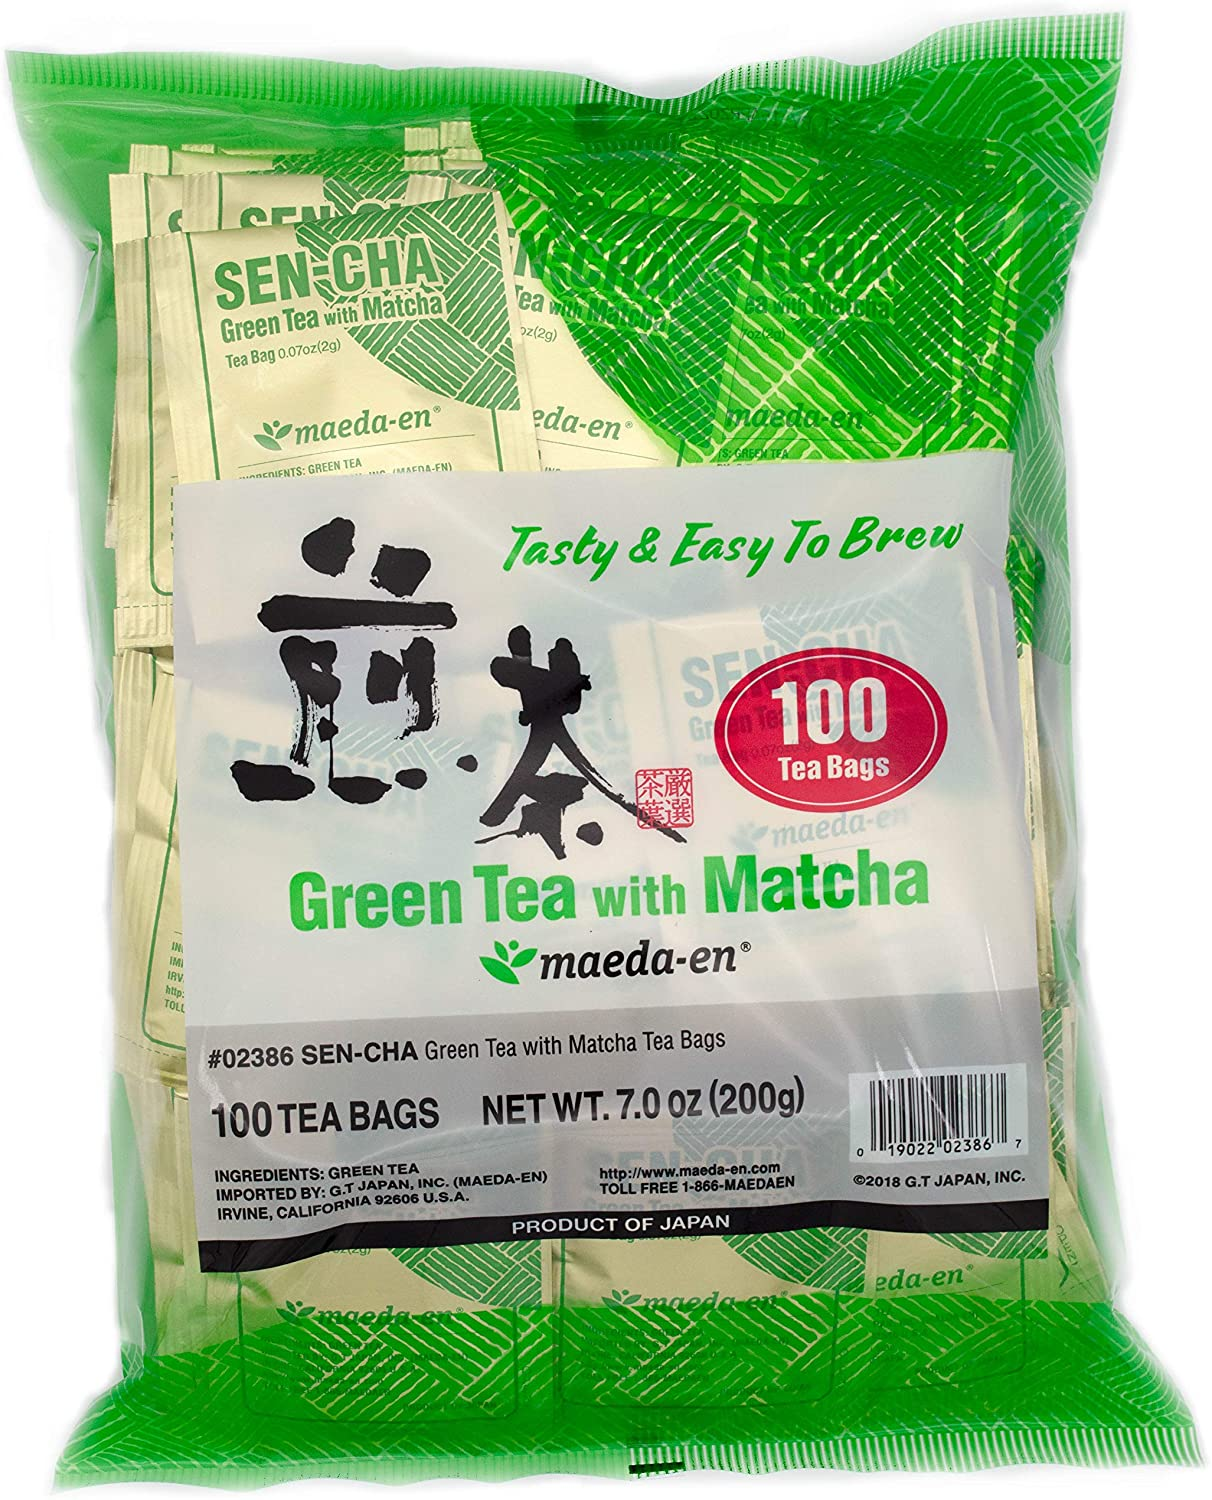 Authentic Maeda-en Green Tea